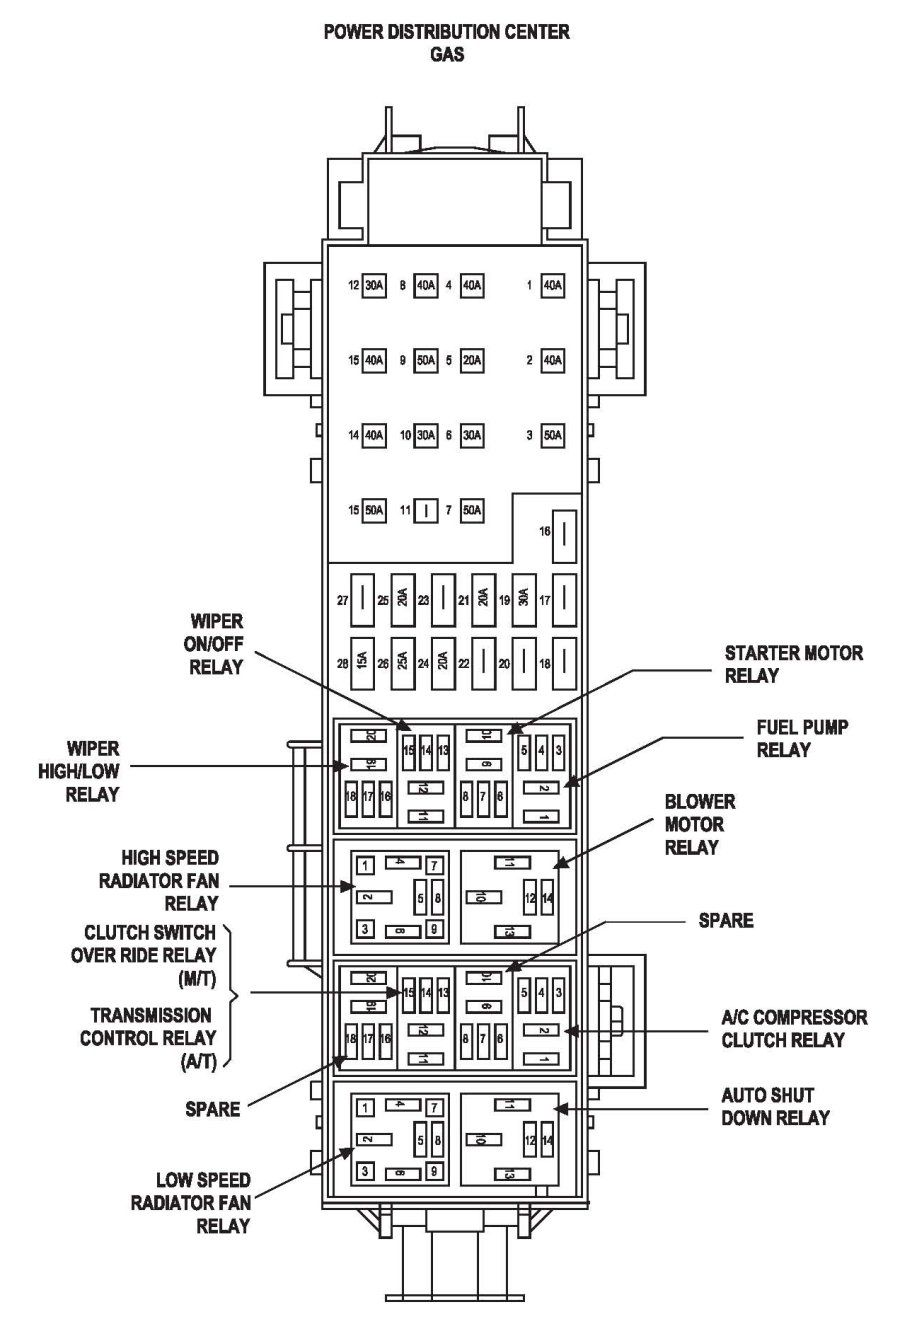 b3536c3739783eb19f827744cc42c3c4 jeep liberty fuse box diagram image details jeep liberty 2012 jeep wrangler fuse box diagram at n-0.co